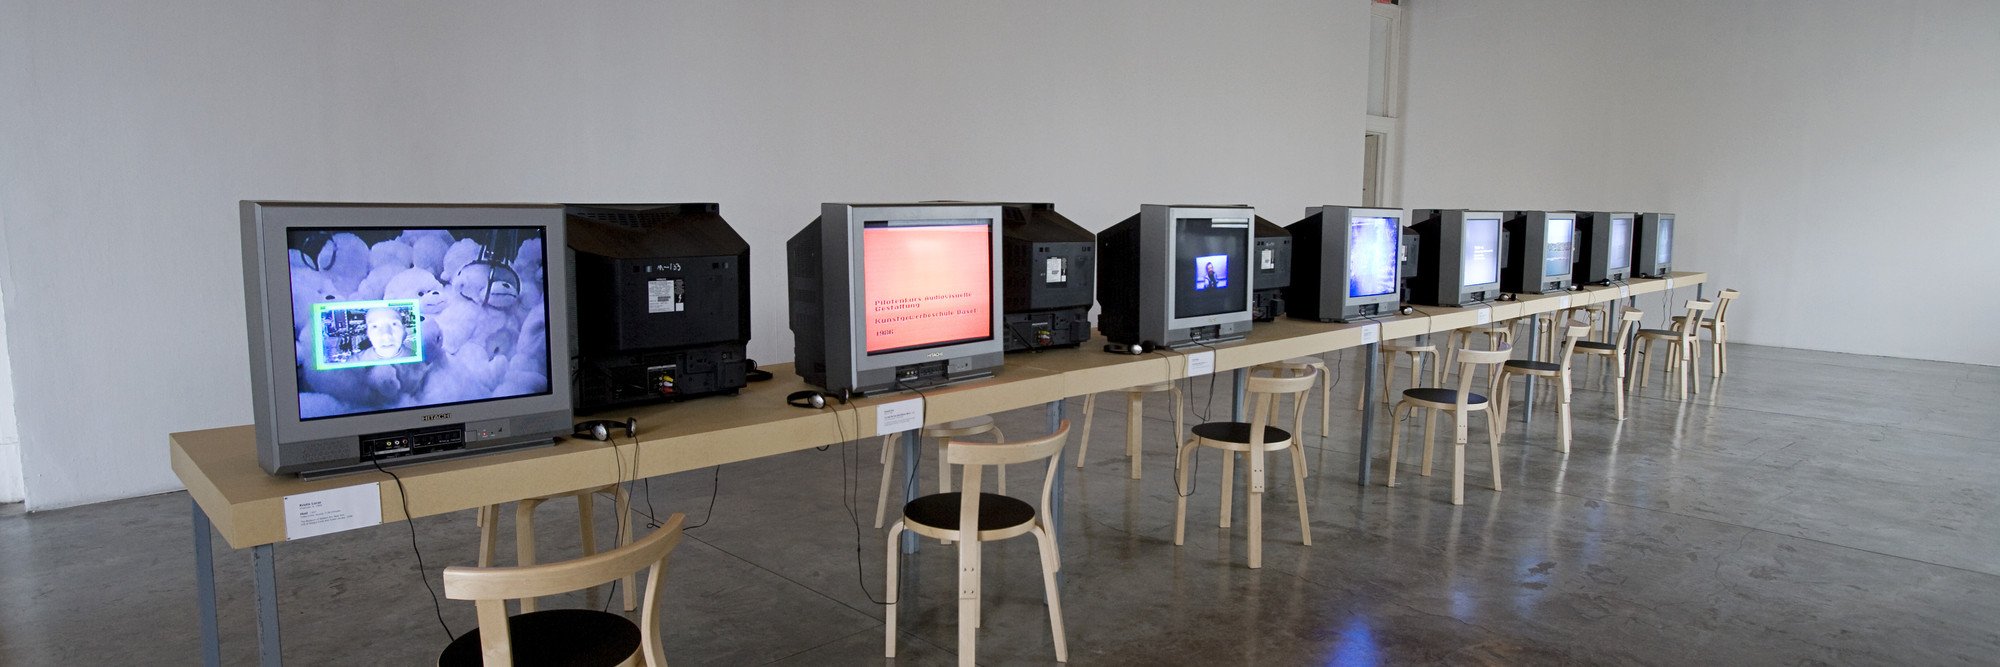 Installation view of Modern Women: Single Channel at MoMA PS1, January 23–August 22, 2011. Photo: Matthew Septimus